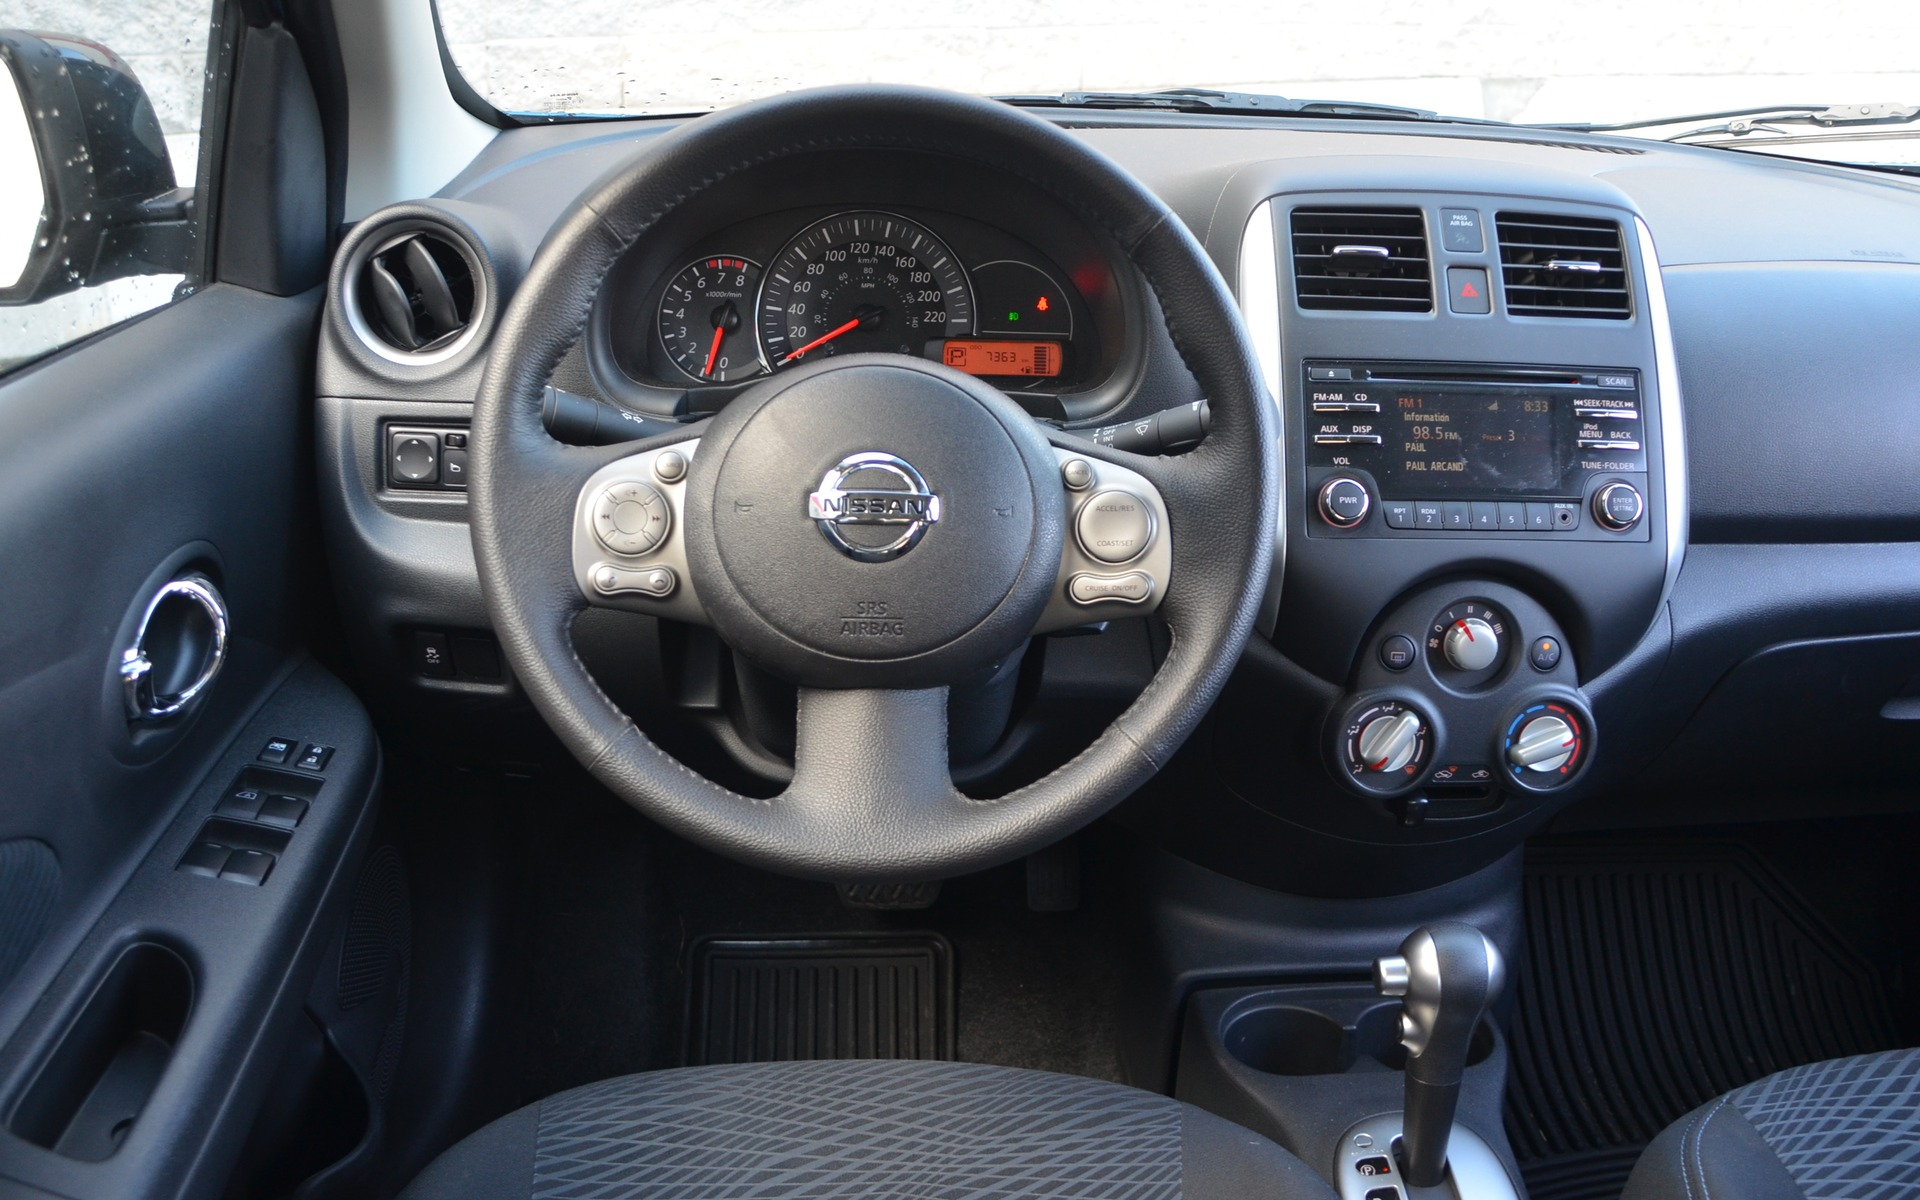 The dashboard is more ergonomical than it is nice.